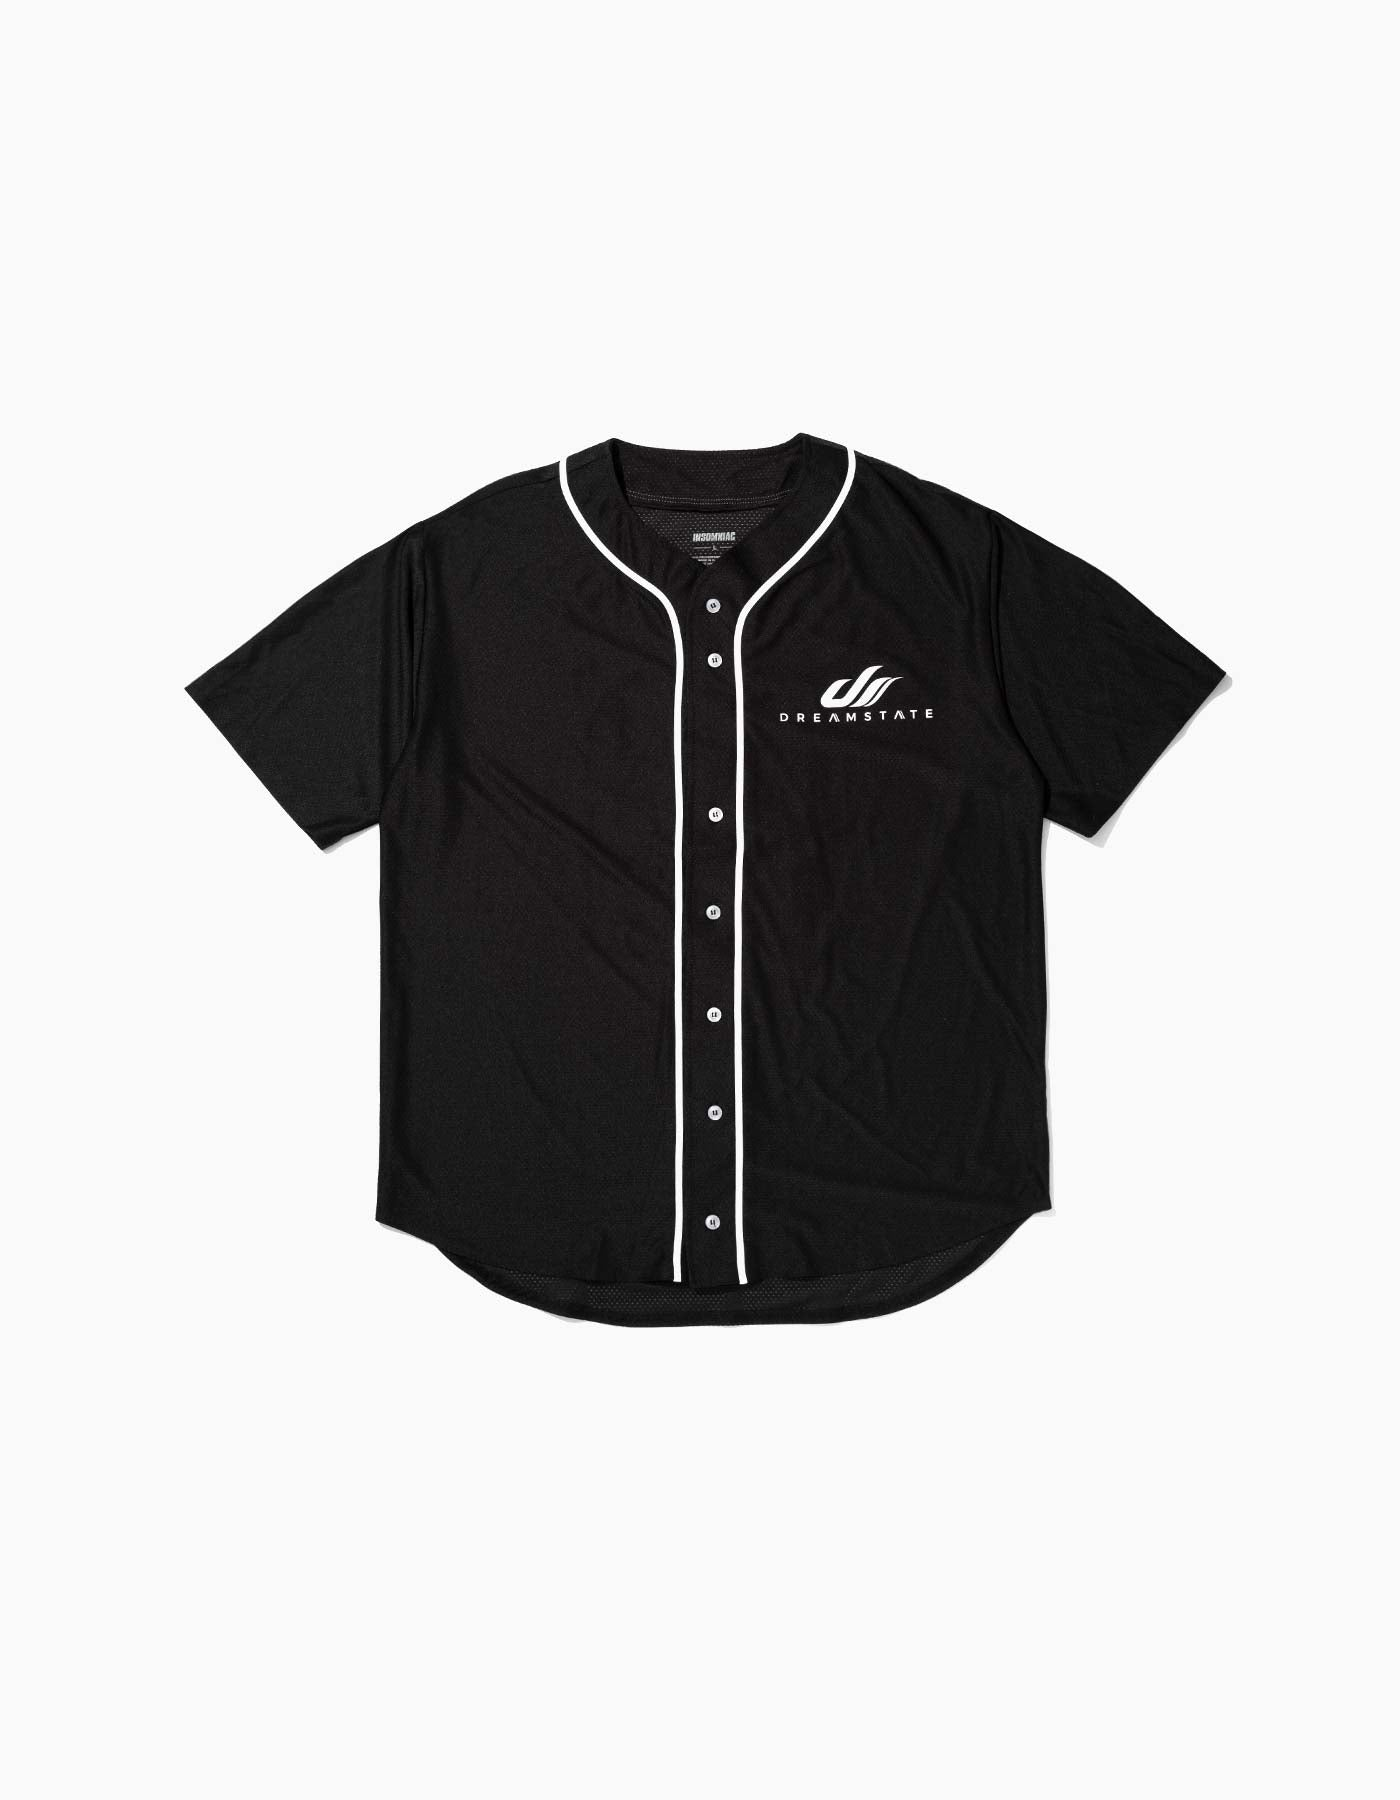 Dreamstate Jersey Black